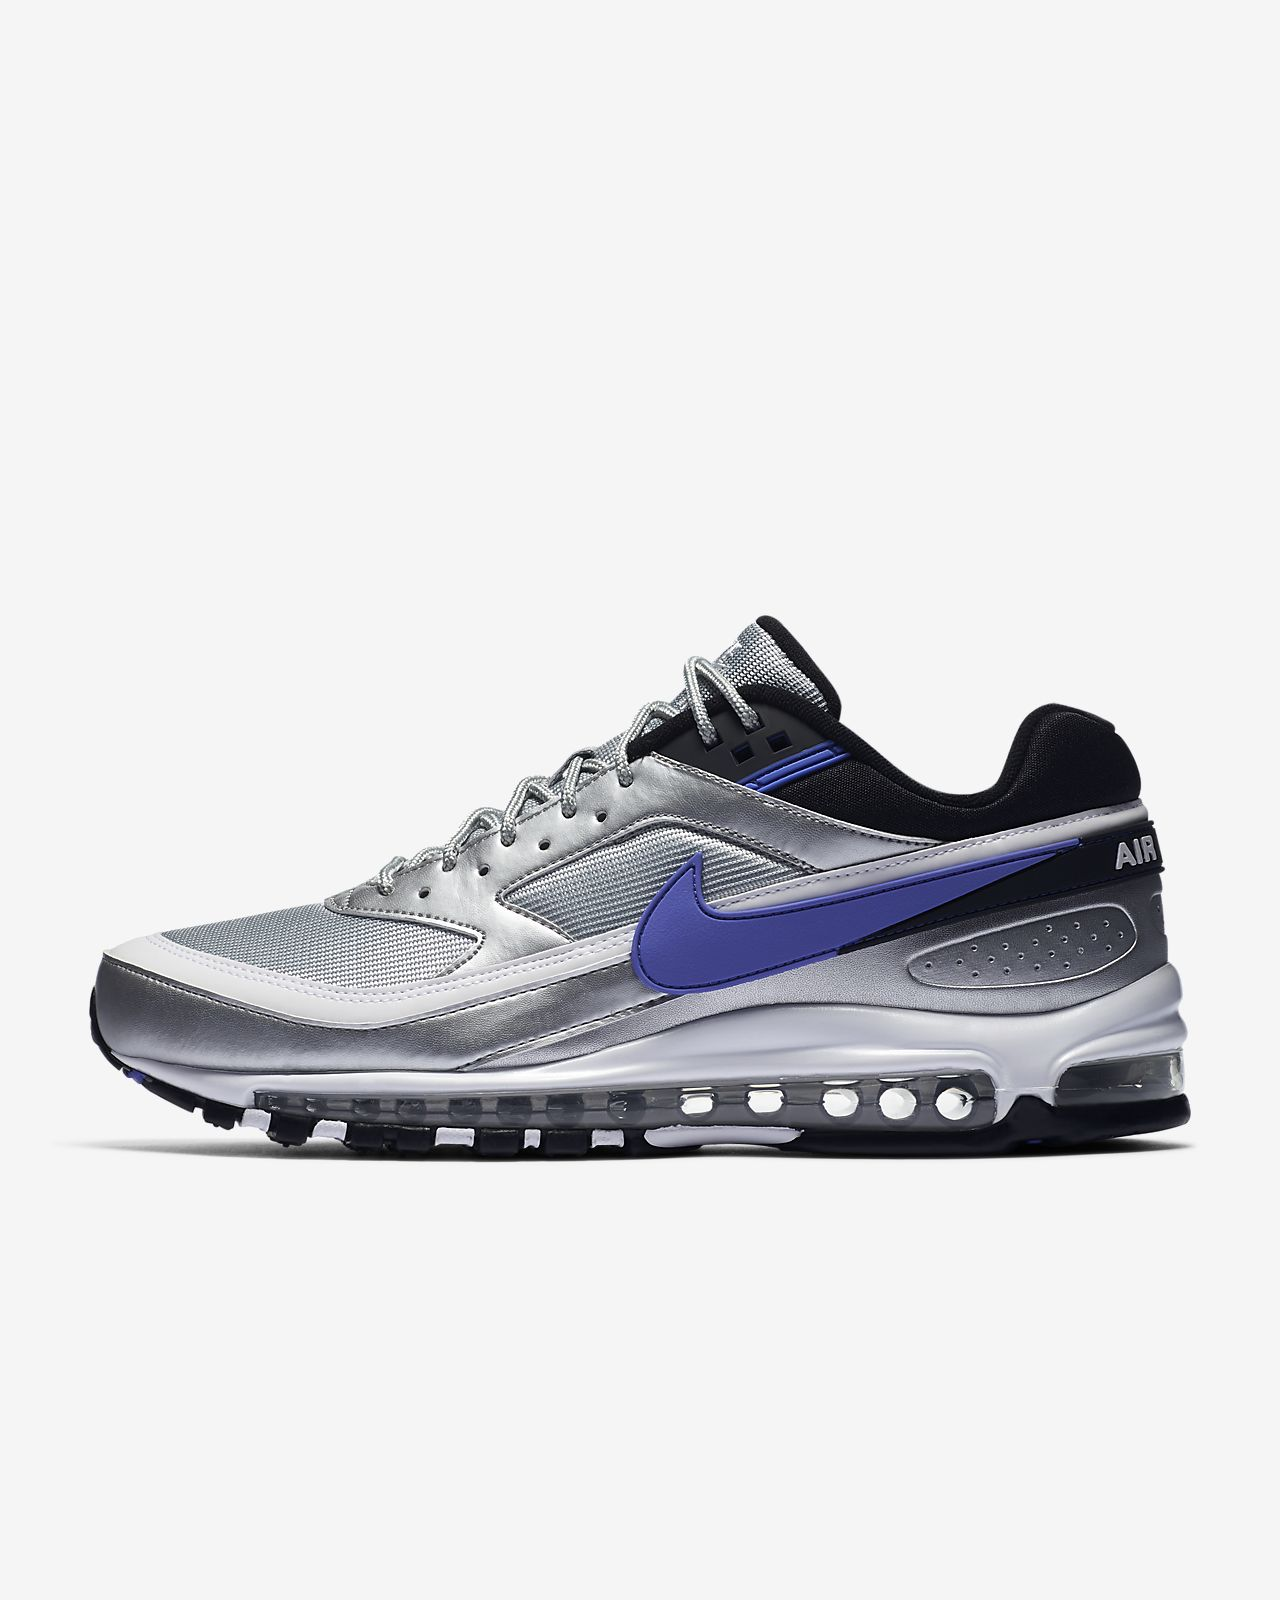 wholesale dealer f4b99 8ee81 ... Chaussure Nike Air Max 97BW pour Homme